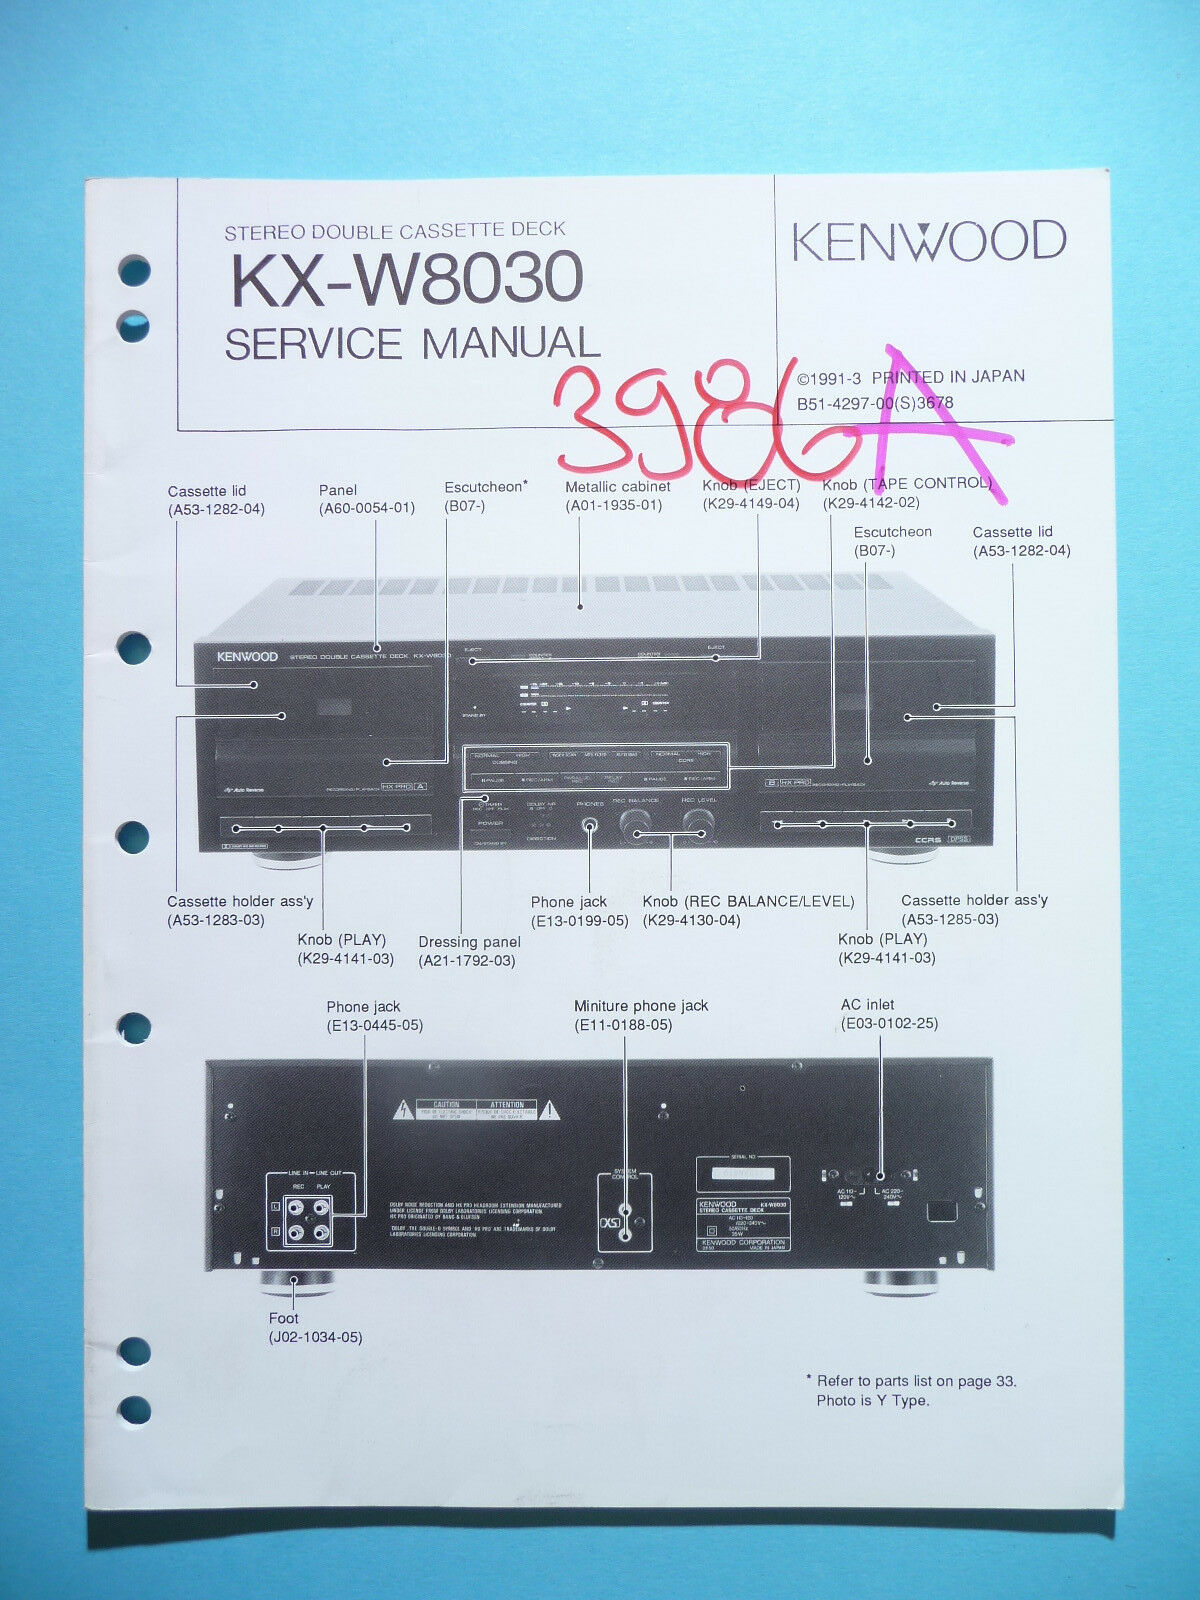 Service Manual Instructions for Kenwood KX-W8030, Original 1 of 1Only 1  available ...